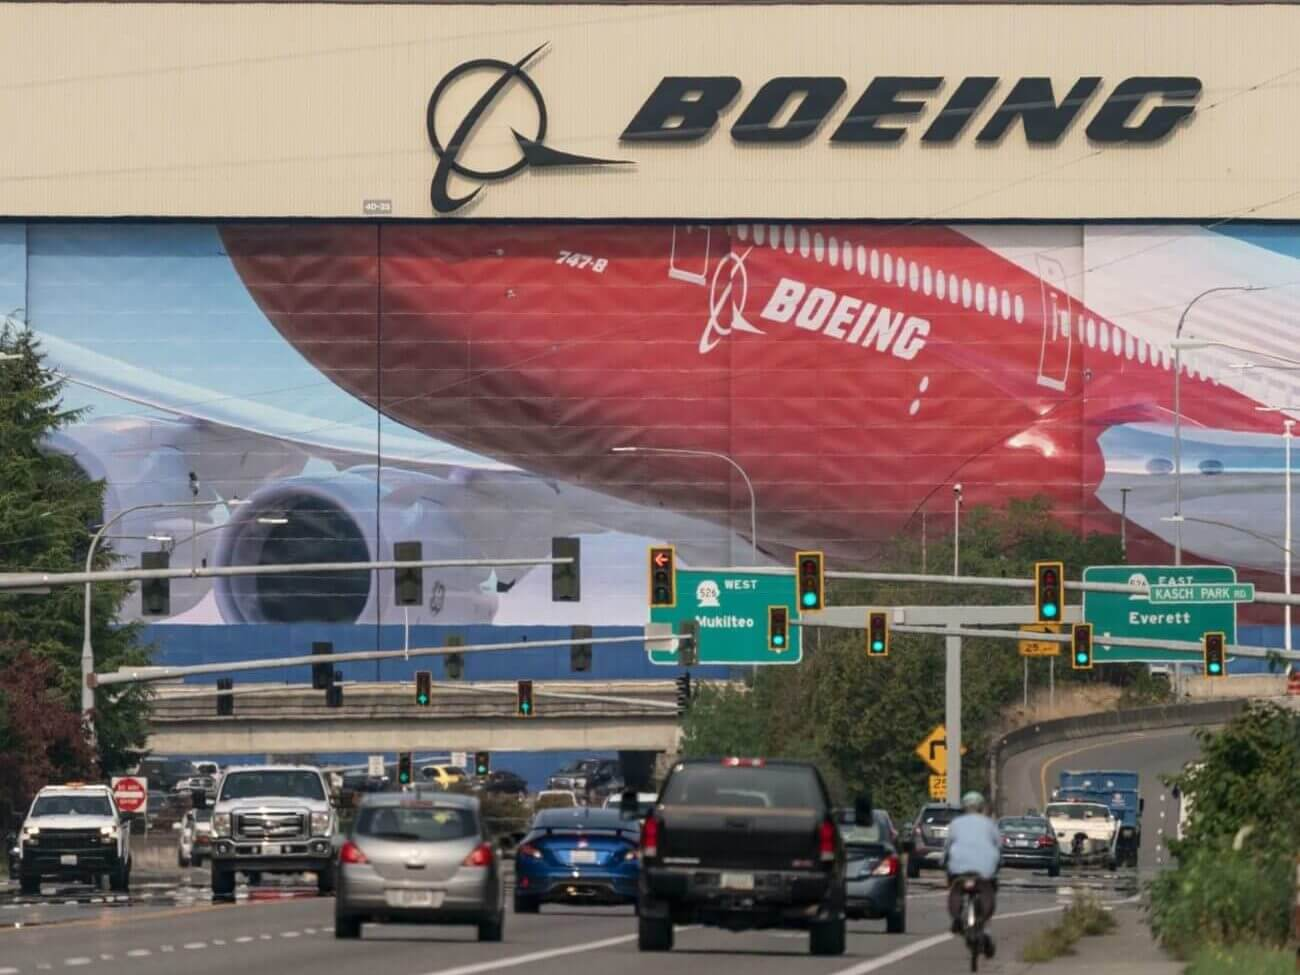 Boeing Is the Most up-to-date Firm to Gain away a Opposed Enterprise Ambiance